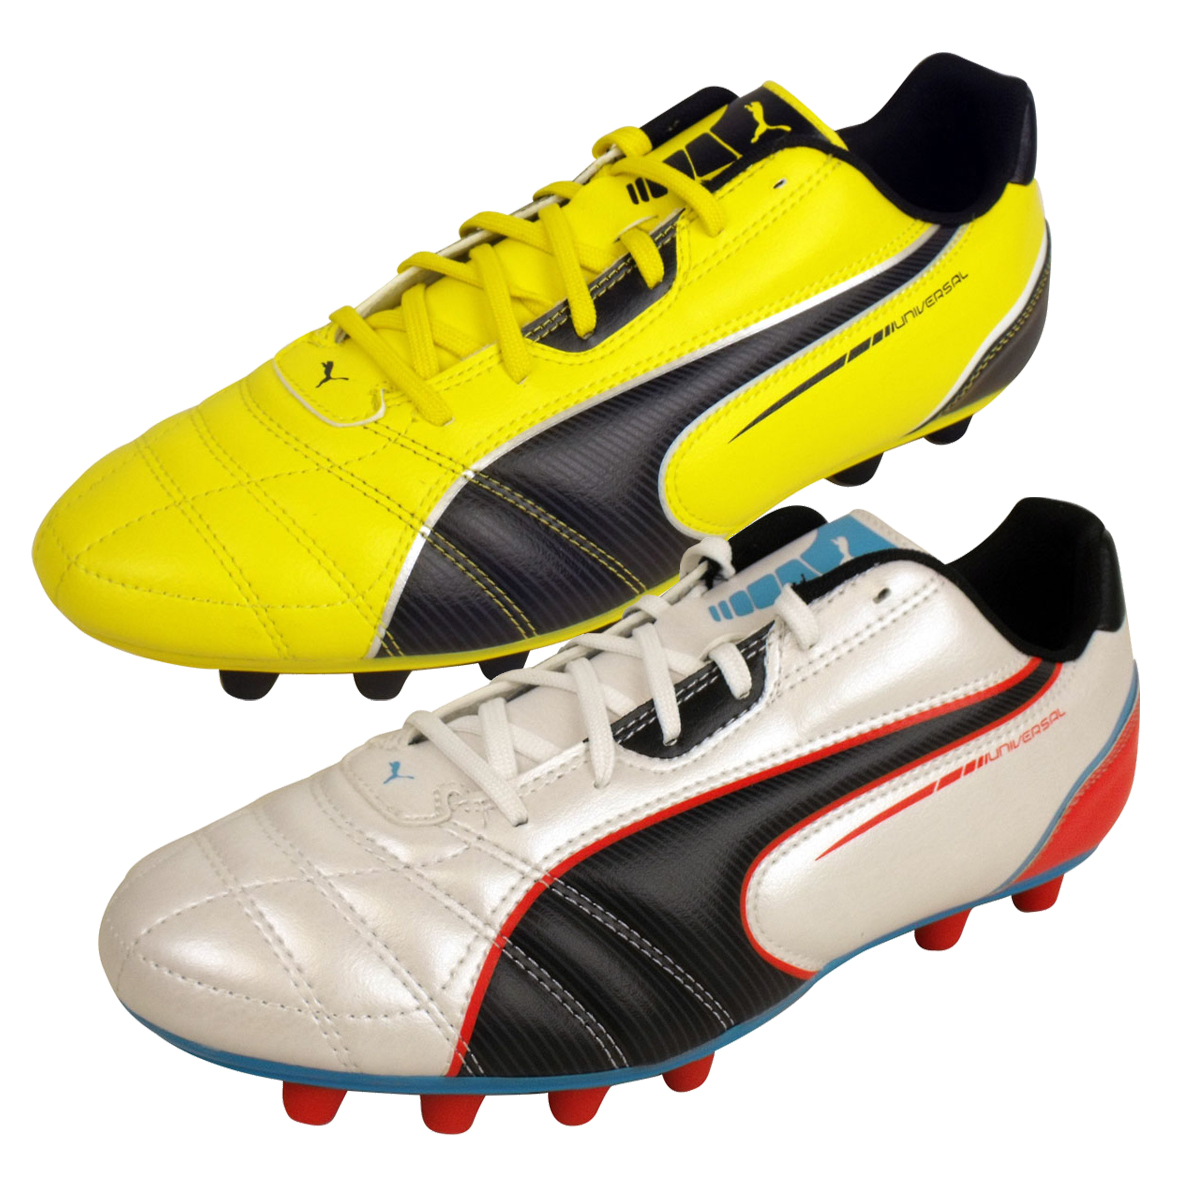 Mens Boys Puma Universal FG Firm Ground Football Boots Soccer Cleats Boot  New 7c8d6be449b5c